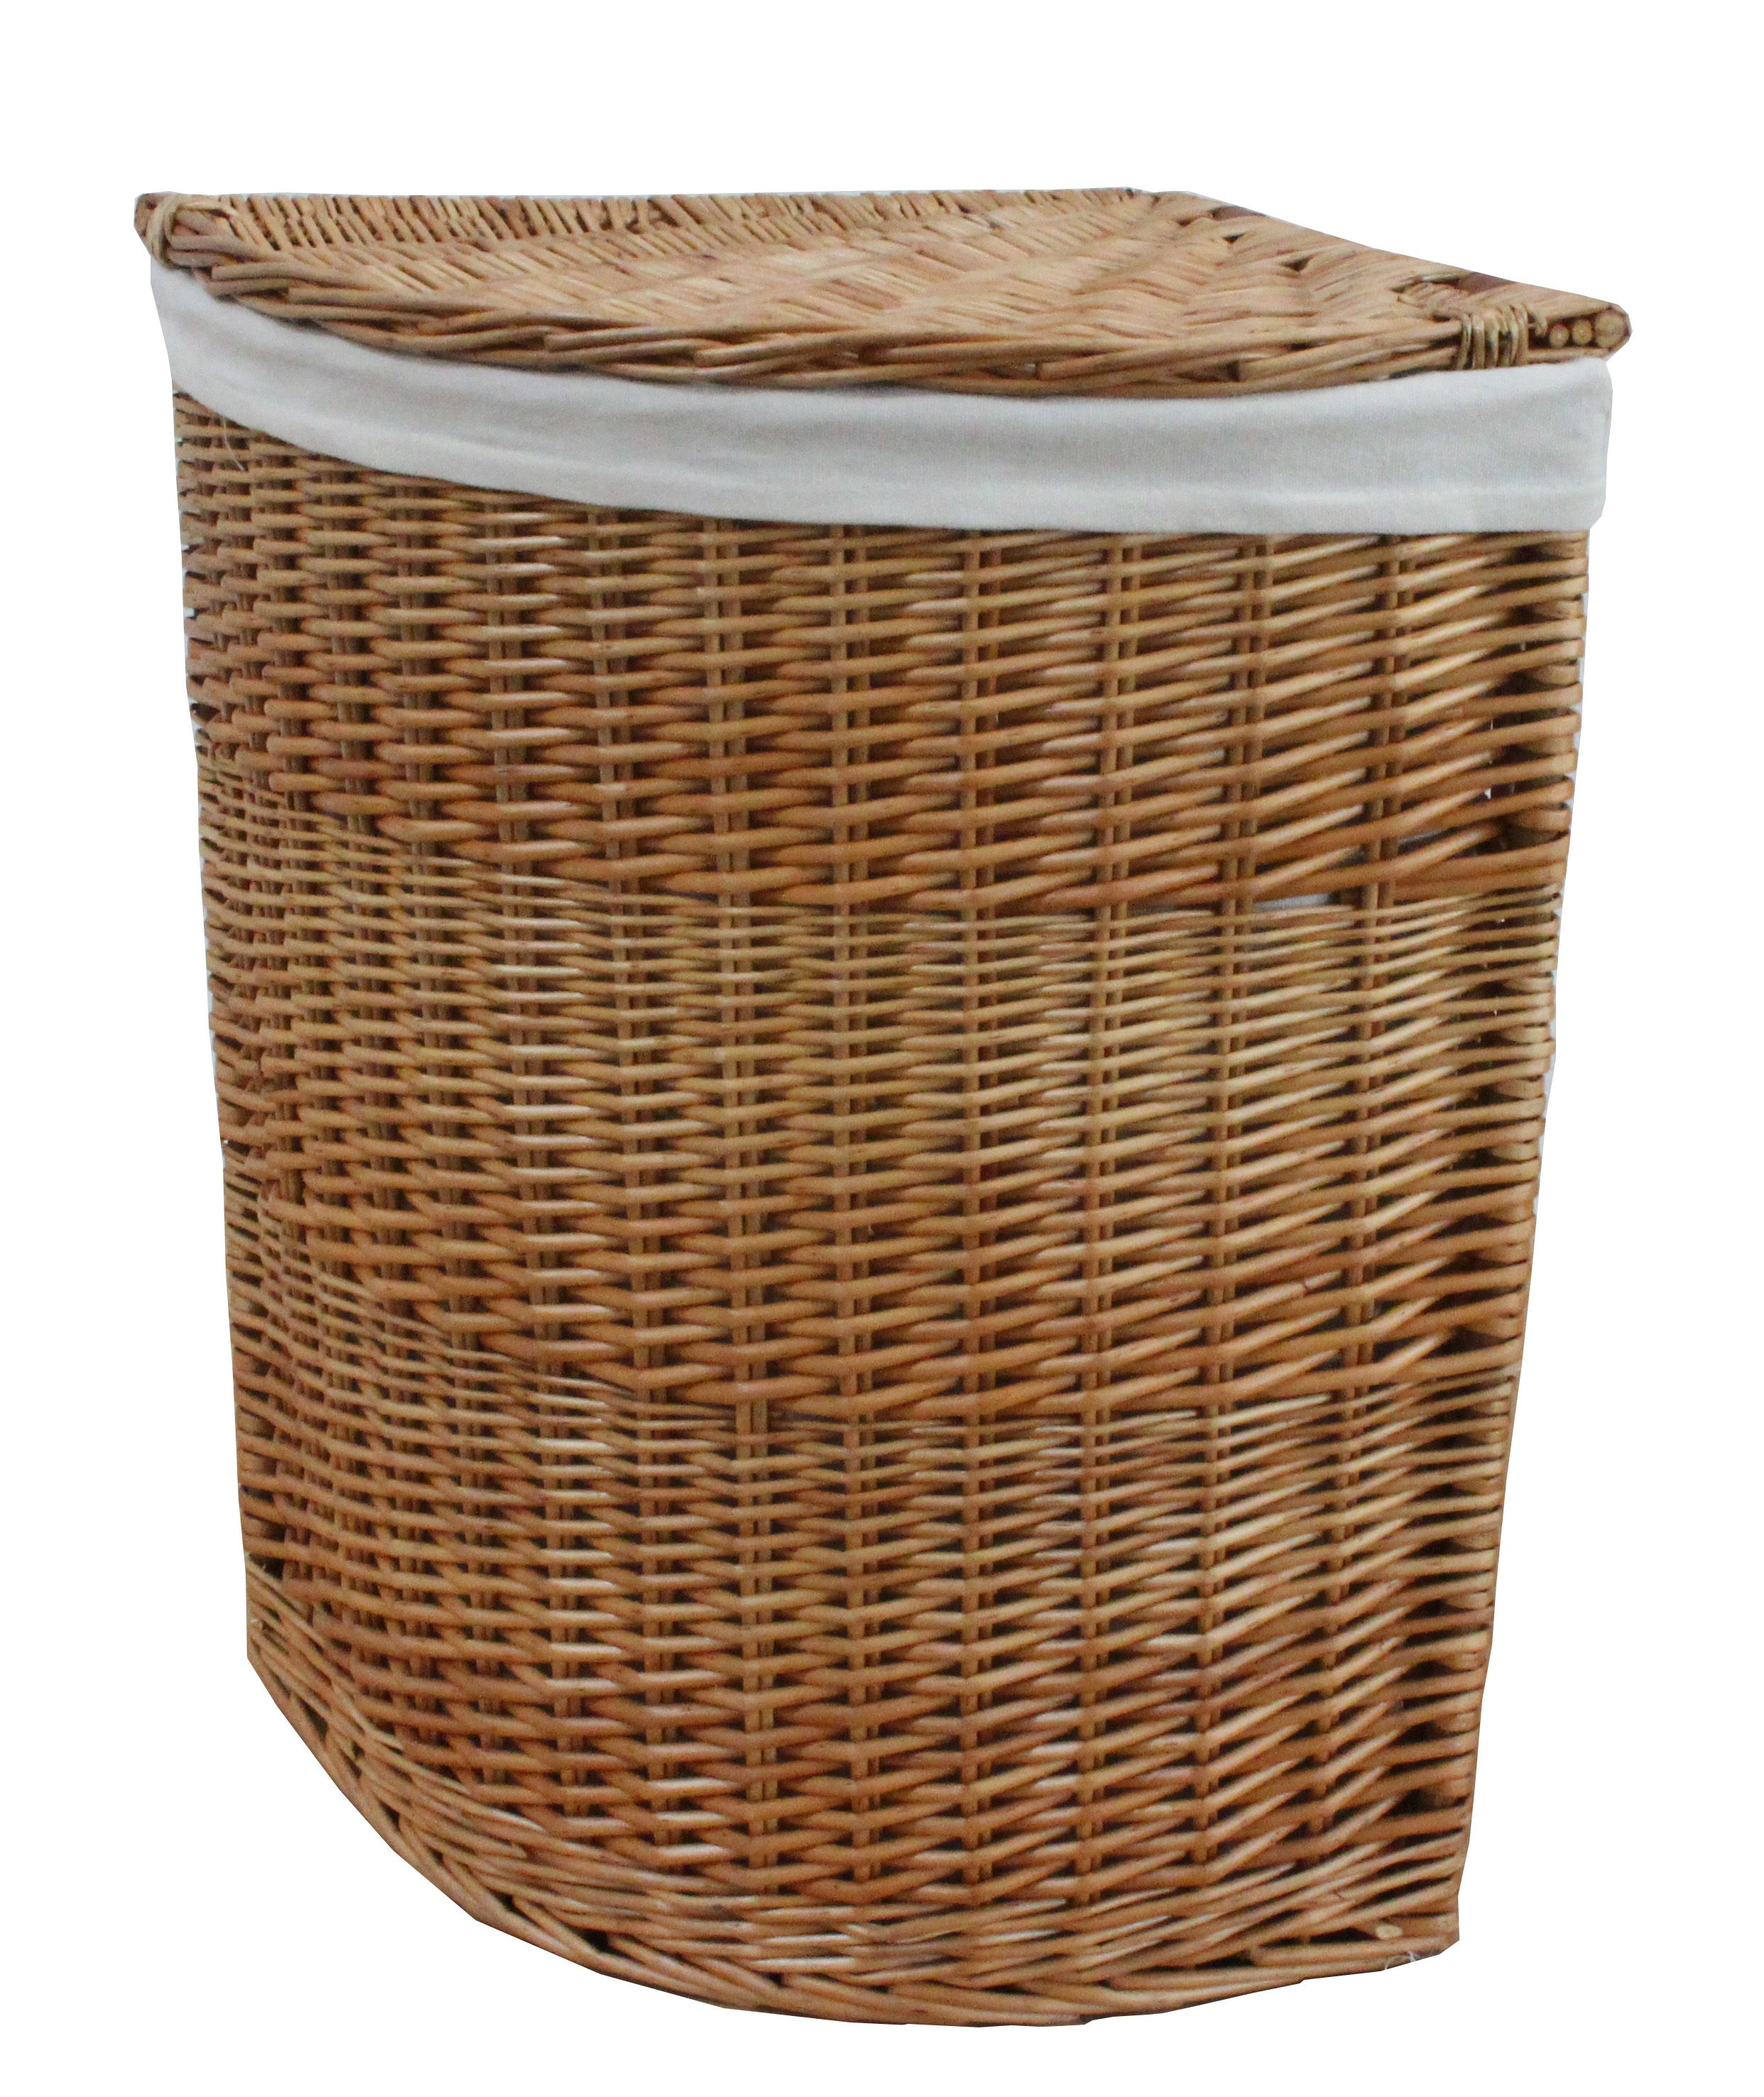 Natural Wicker Corner Laundry Basket Corner Laundry Basket Wicker Wicker Laundry Basket